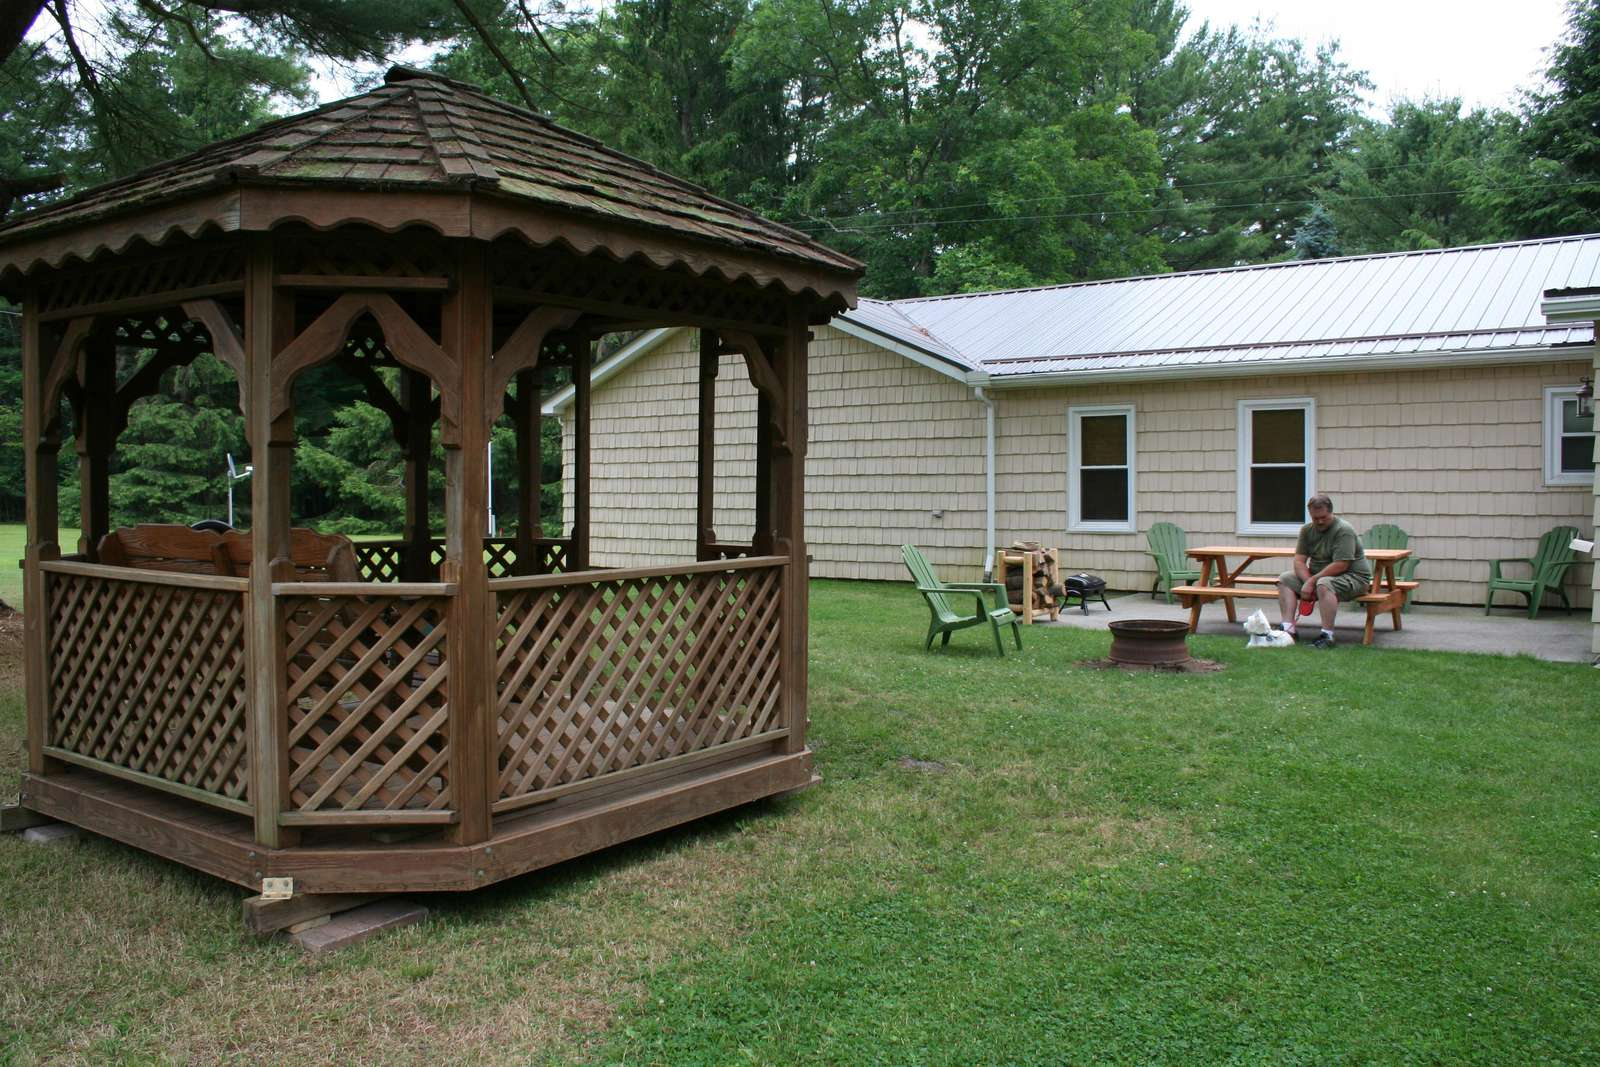 Back of cabin showing gazebo with glider